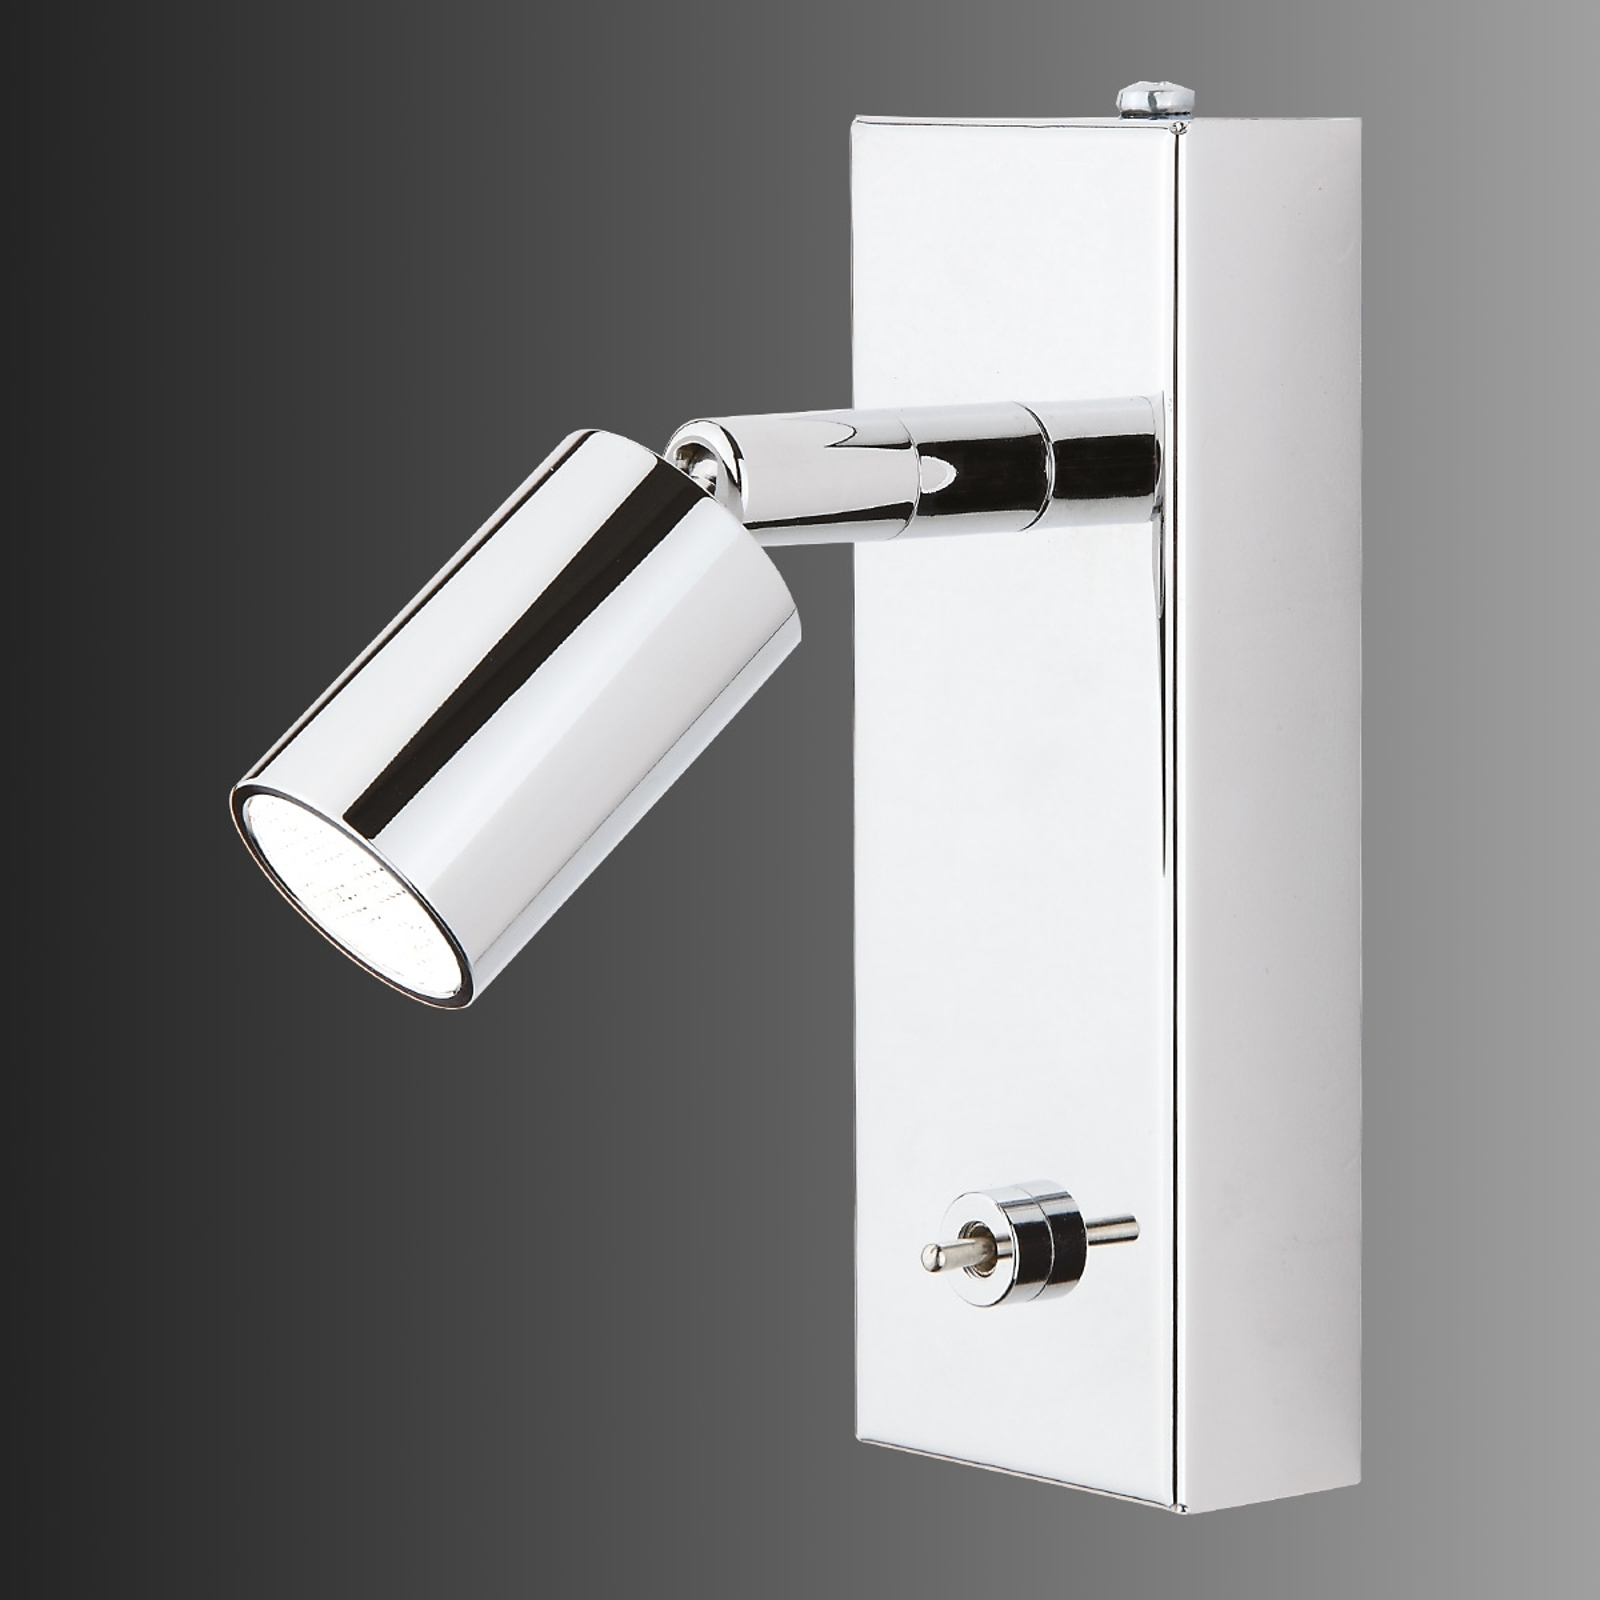 LED wall light Karen with toggle switch_1524094_1